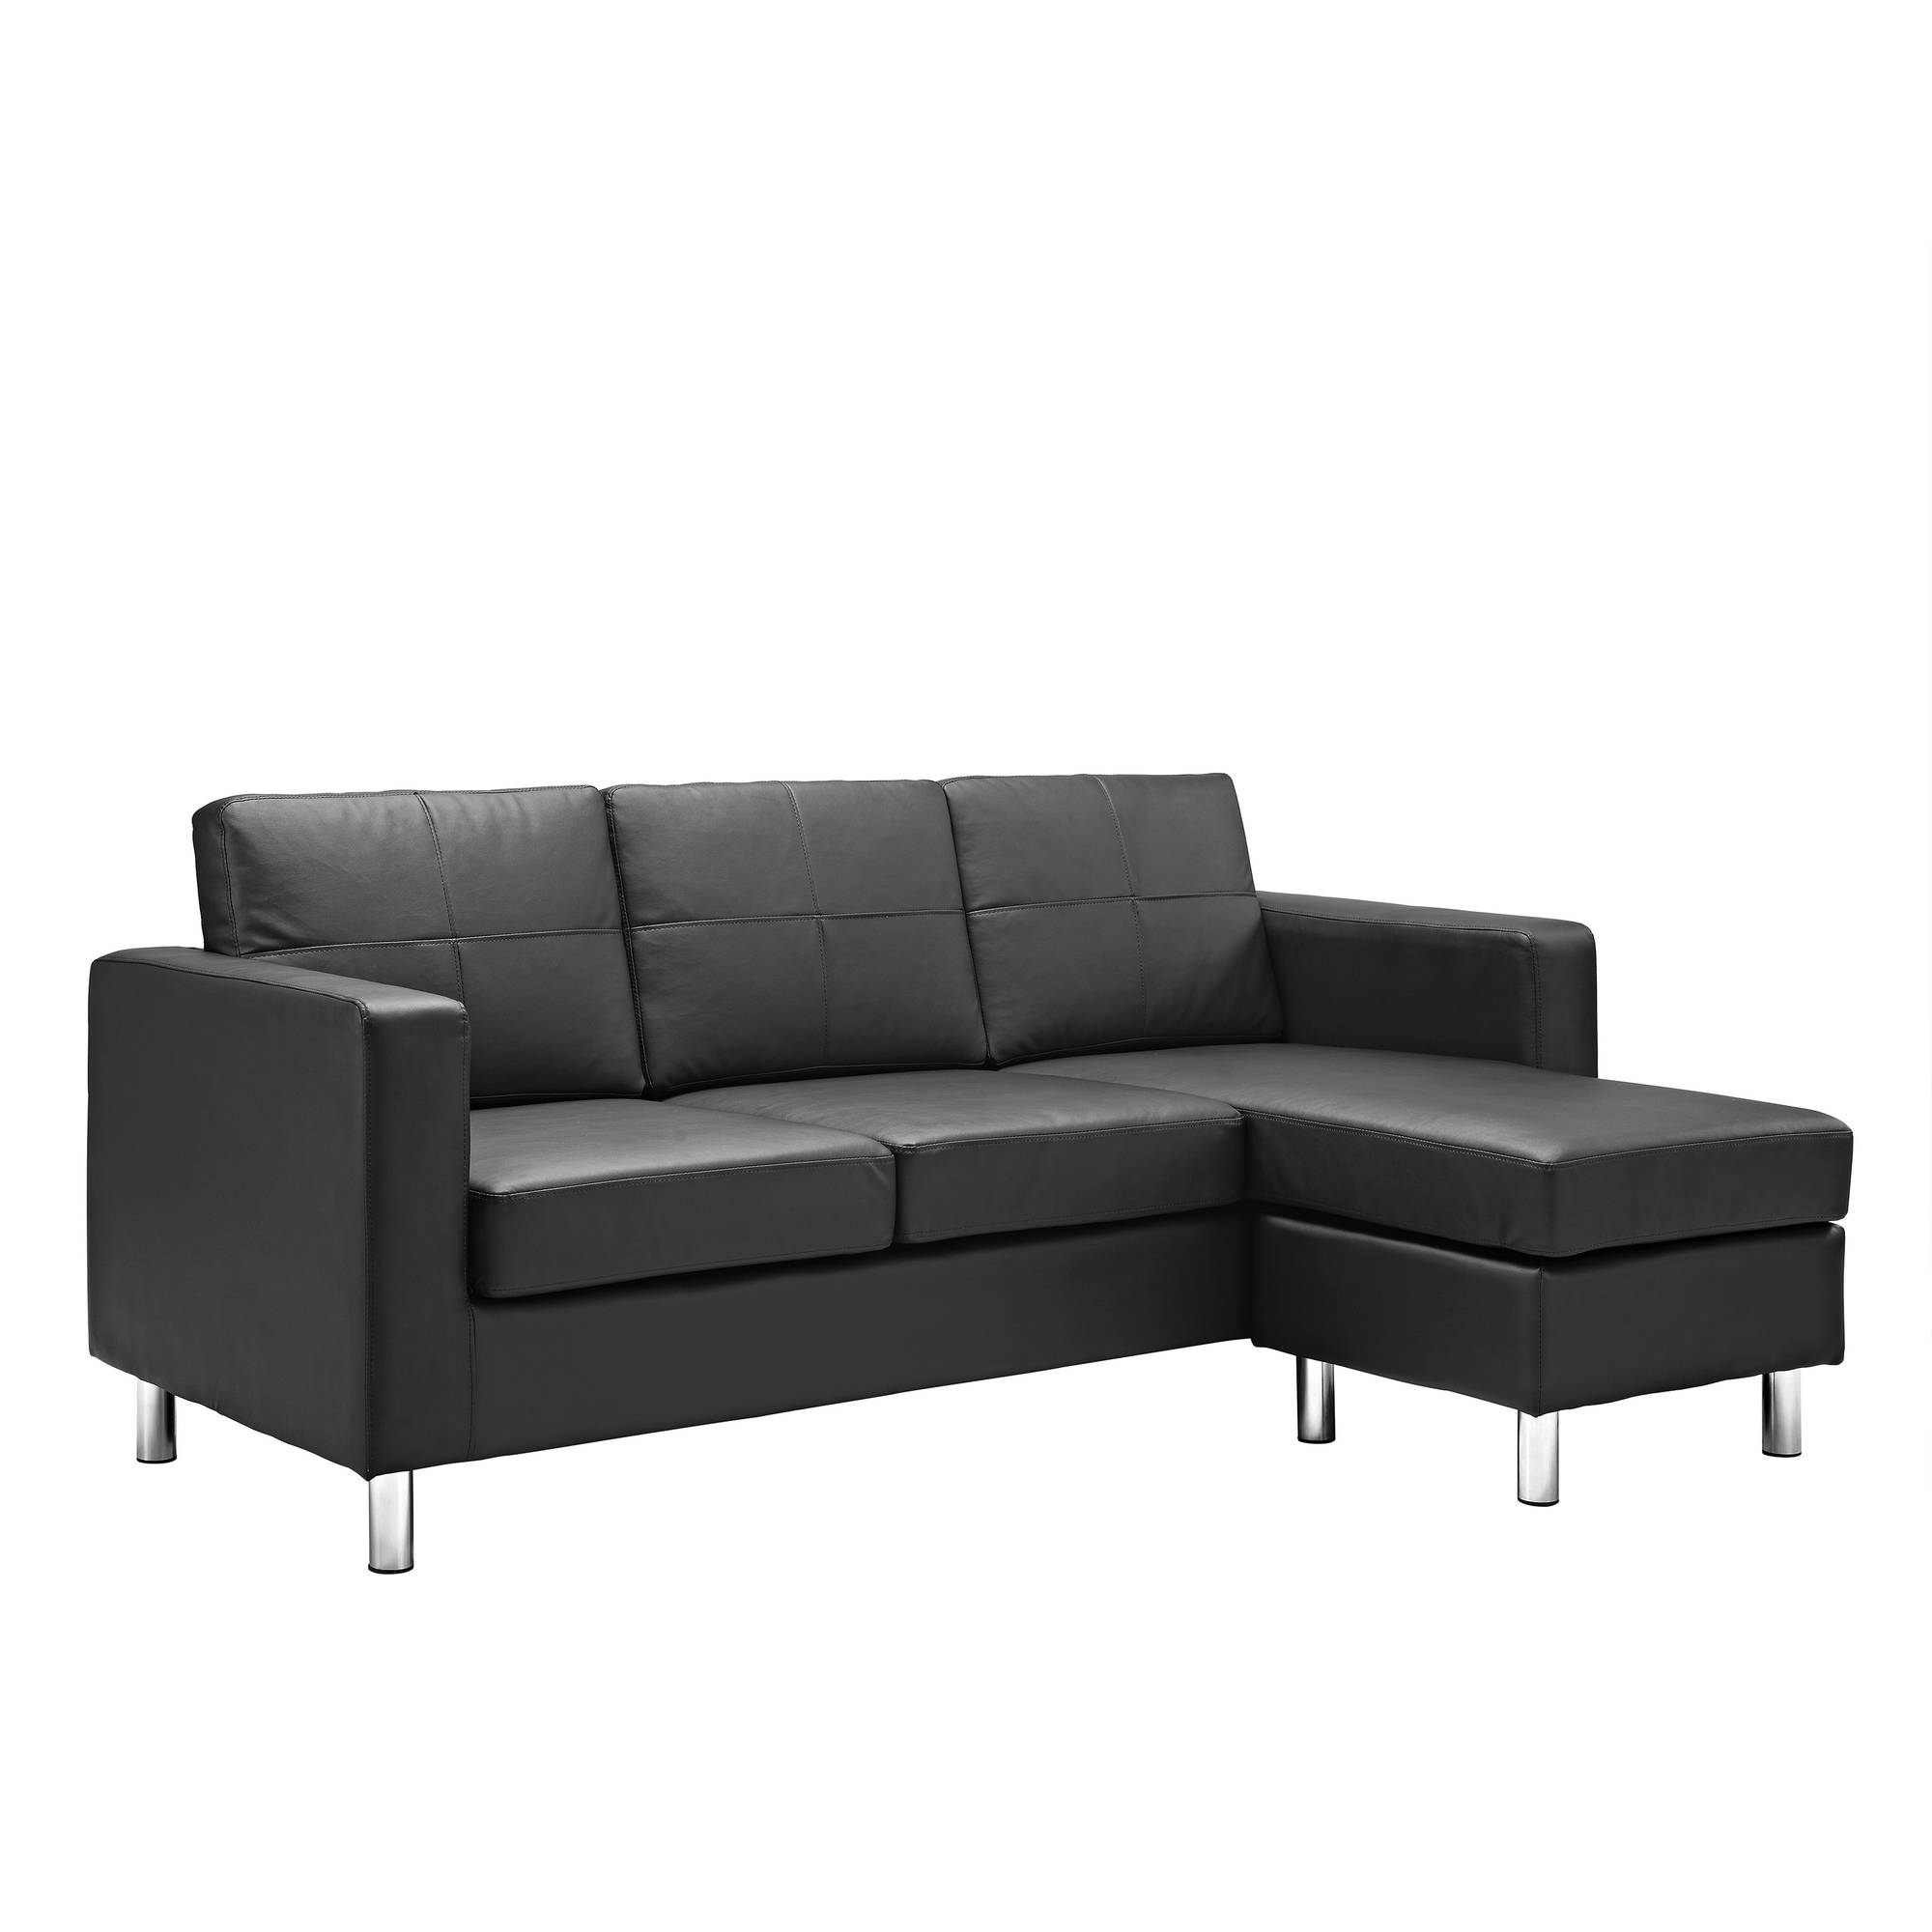 Dorel Living Small Spaces Configurable Sectional Sofa Multiple Regarding Condo Sectional Sofas (#6 of 12)